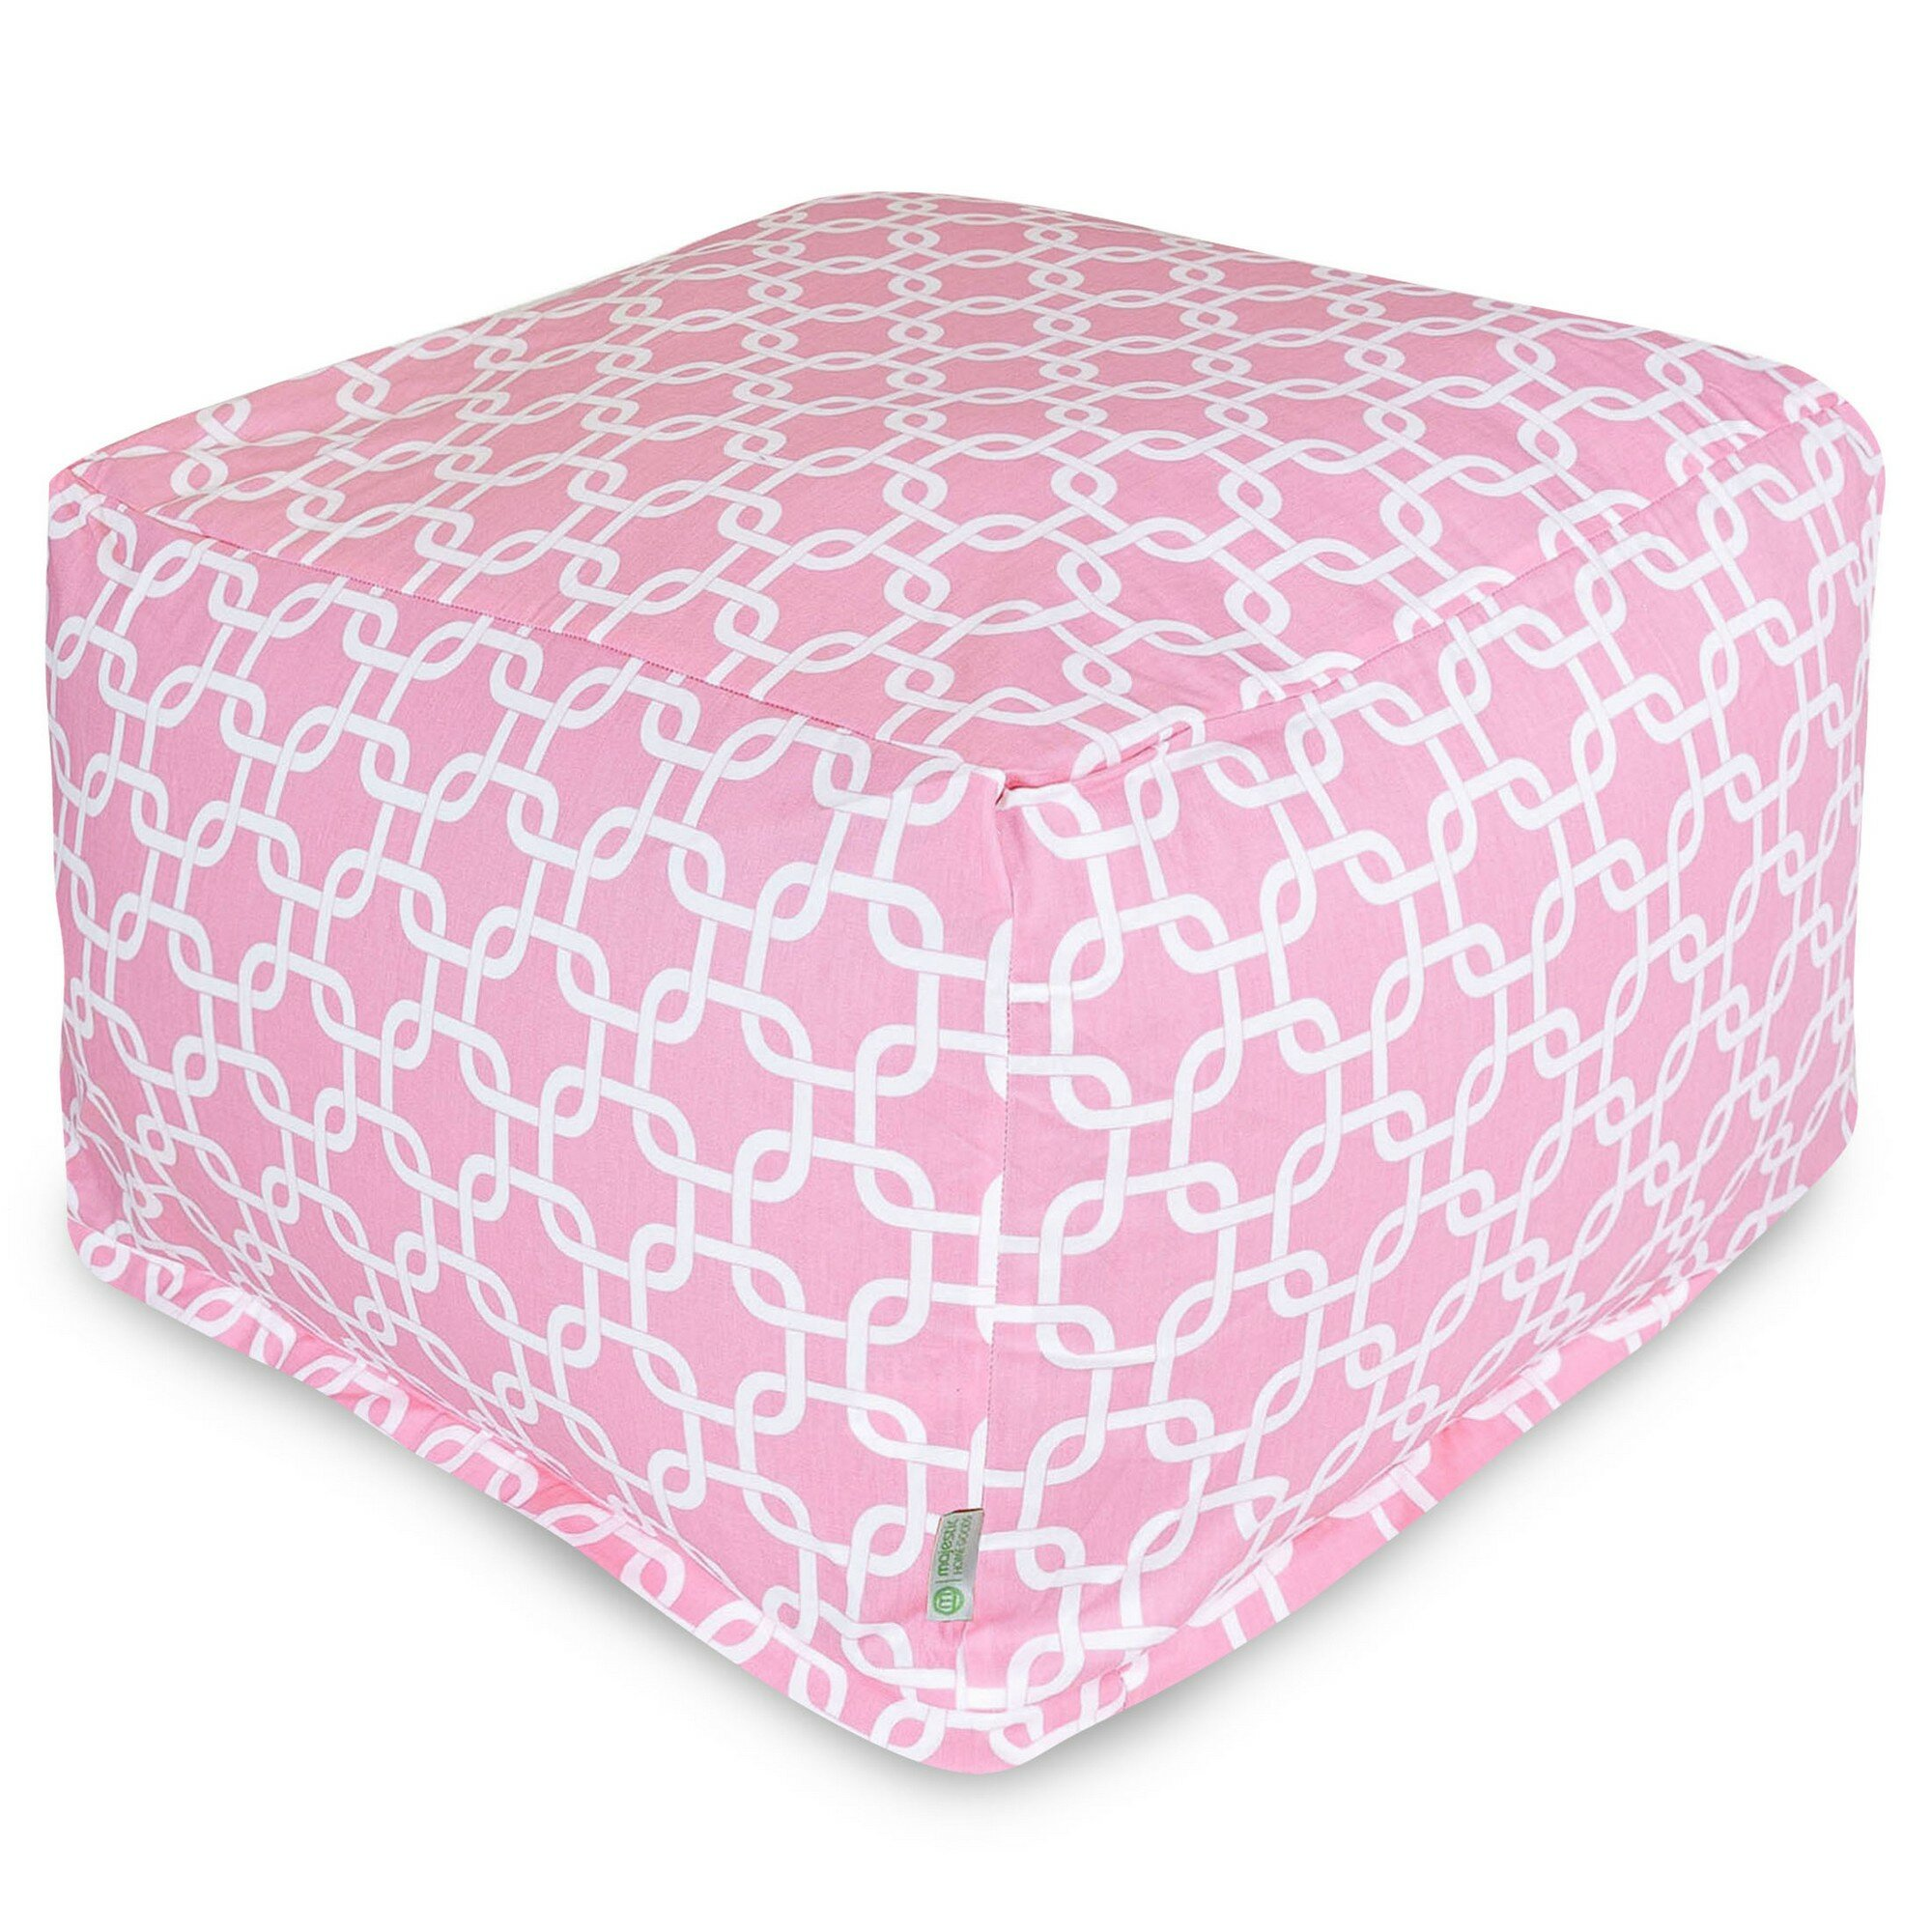 Outdoor /& Indoor Use Pouffe CUBE Bean Bag Footstool PINK